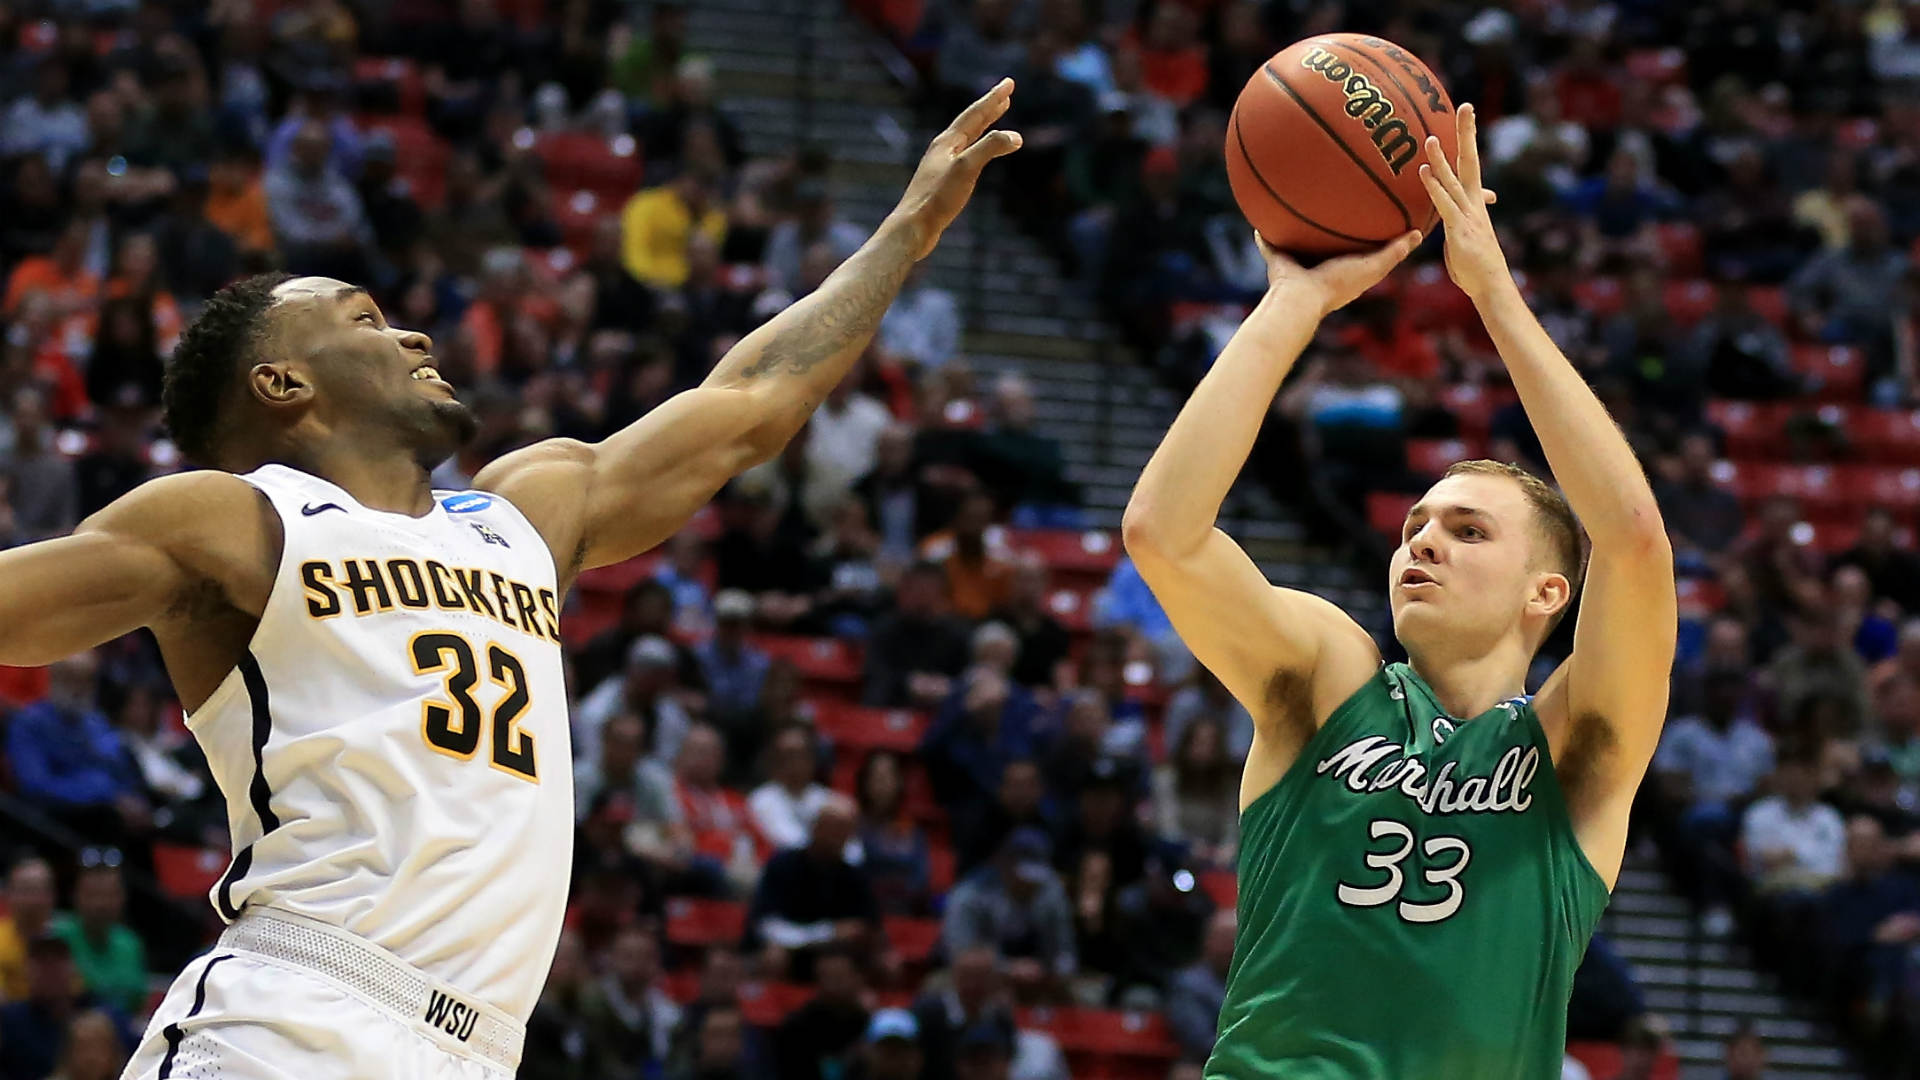 Elmore's 27 lead 13th-seeded Marshall over Wichita St 81-75